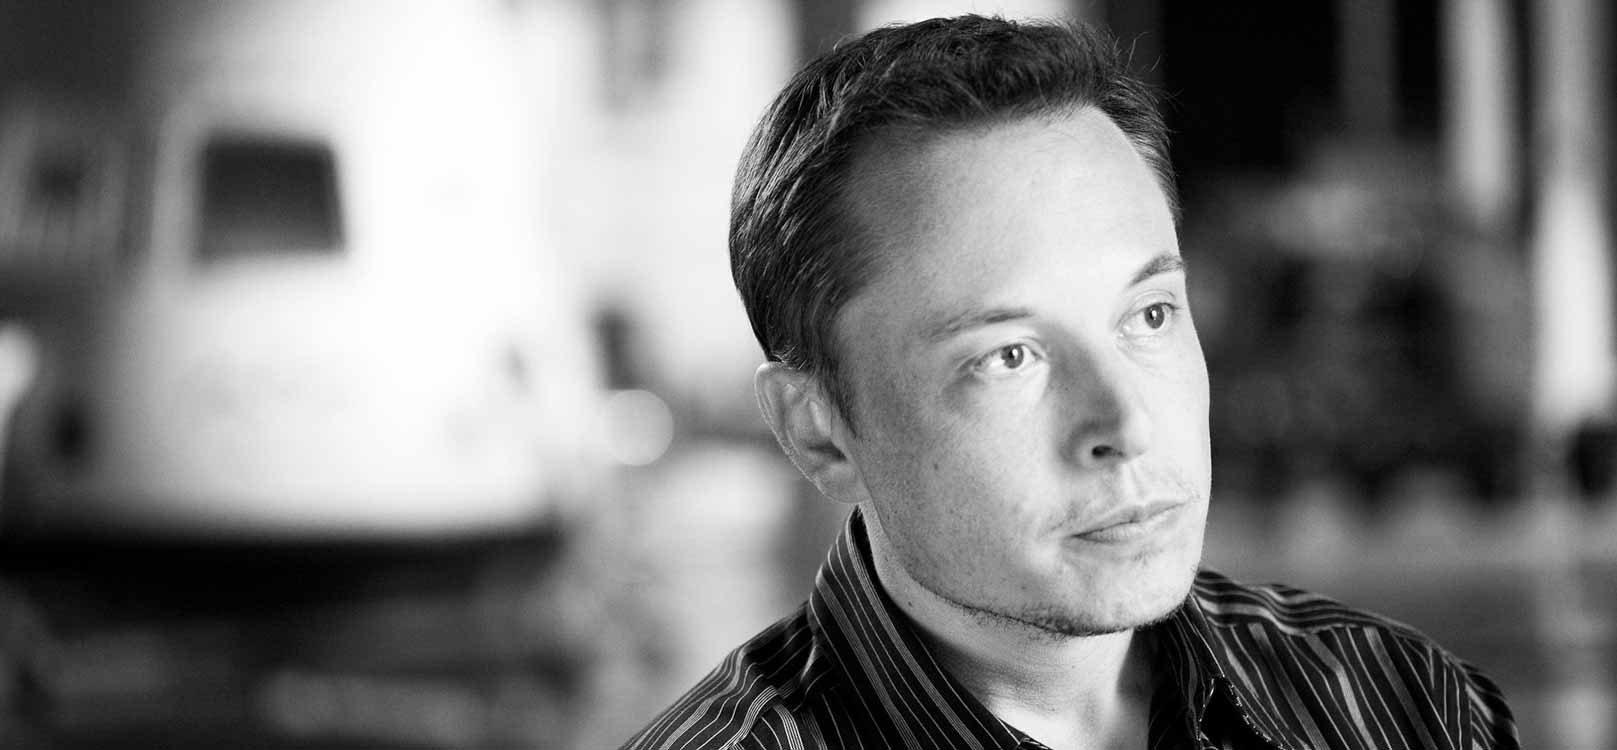 This famous roboticist doesn't think Elon Musk understands AI